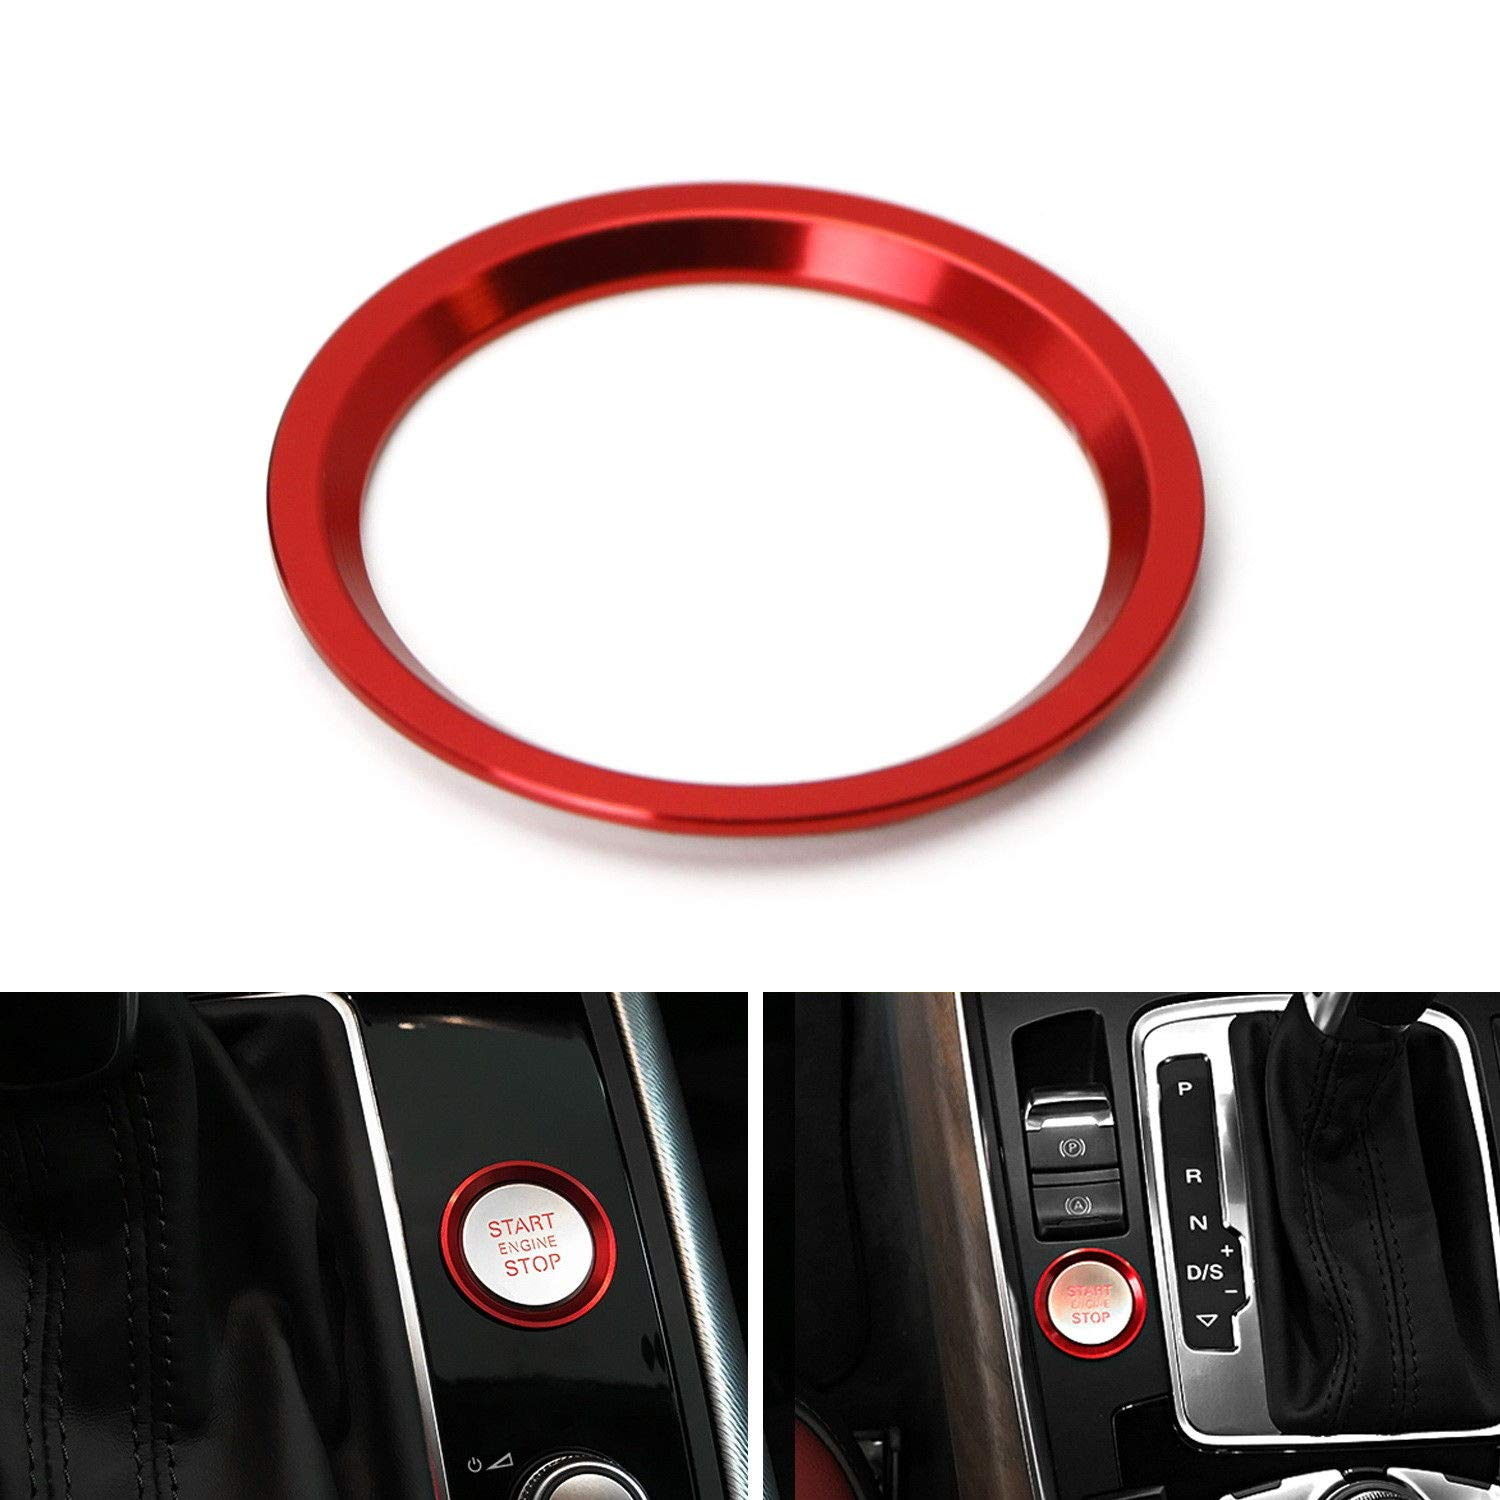 iJDMTOY (1) Red Aluminum Keyless Engine Push Start Button Surrounding Decoration Trim For Audi A4 A5 A7 Q5, etc iJDMTOY Auto Accessories Peel-N-Apply Self-Adhesive Ring/Cover